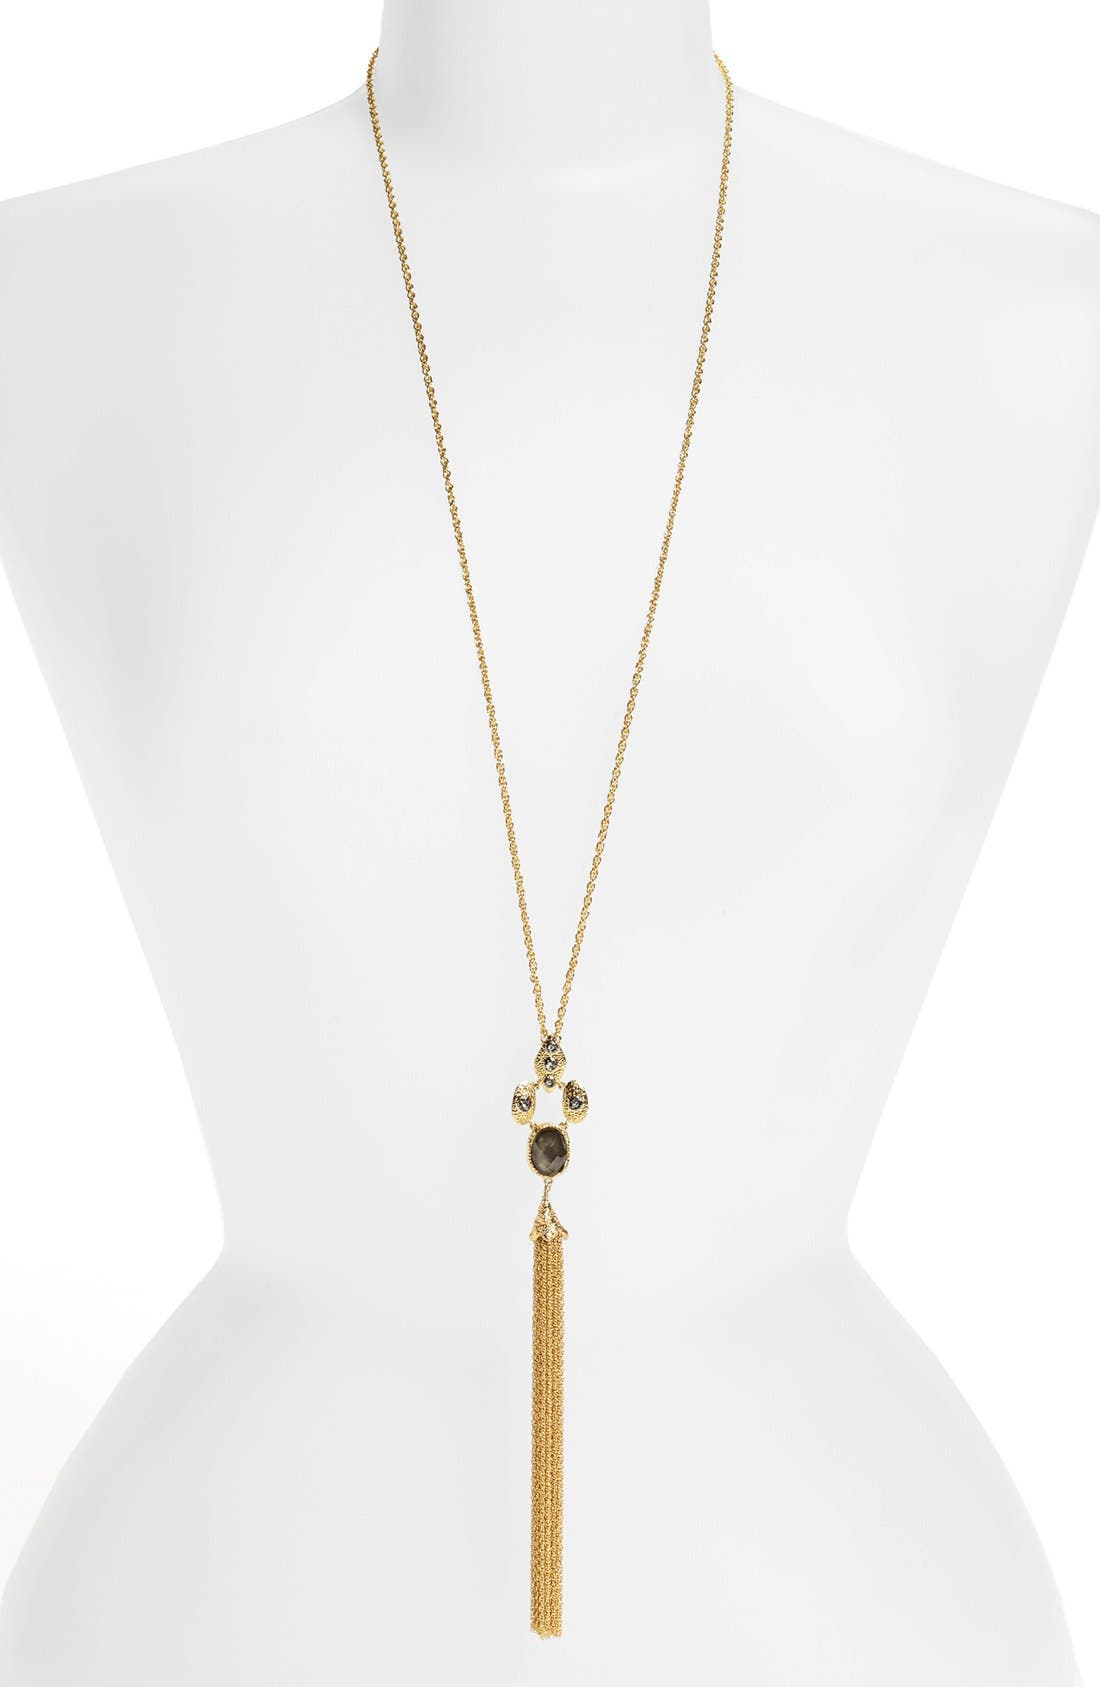 Main Image - Alexis Bittar 'Elements' Long Tassel Pendant Necklace